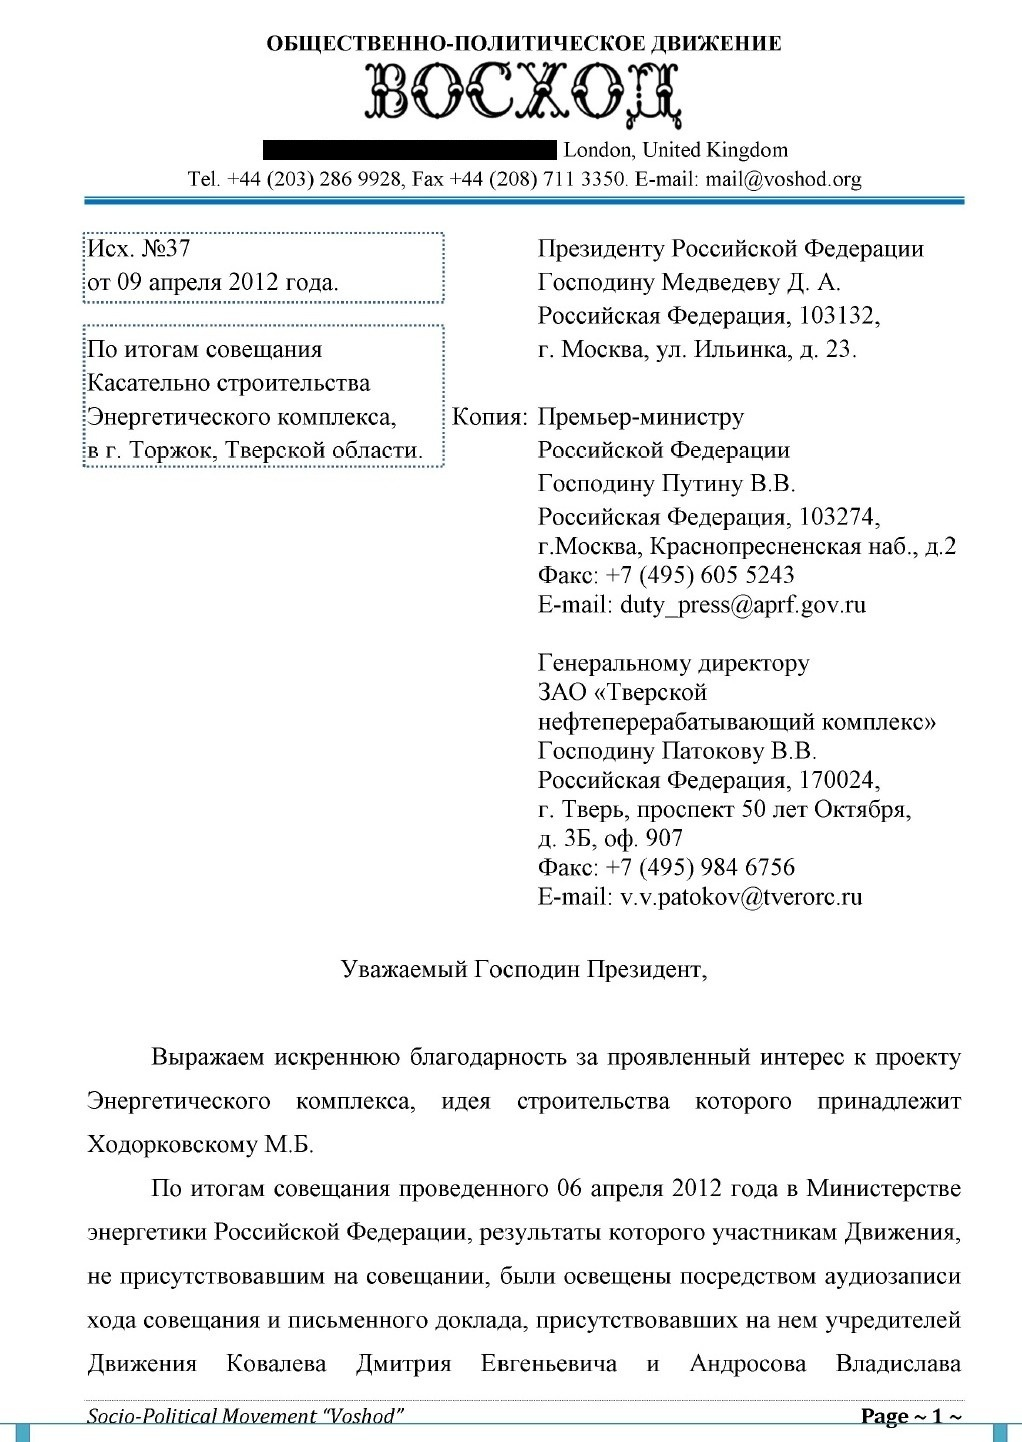 Letter to President of Russia N37-1